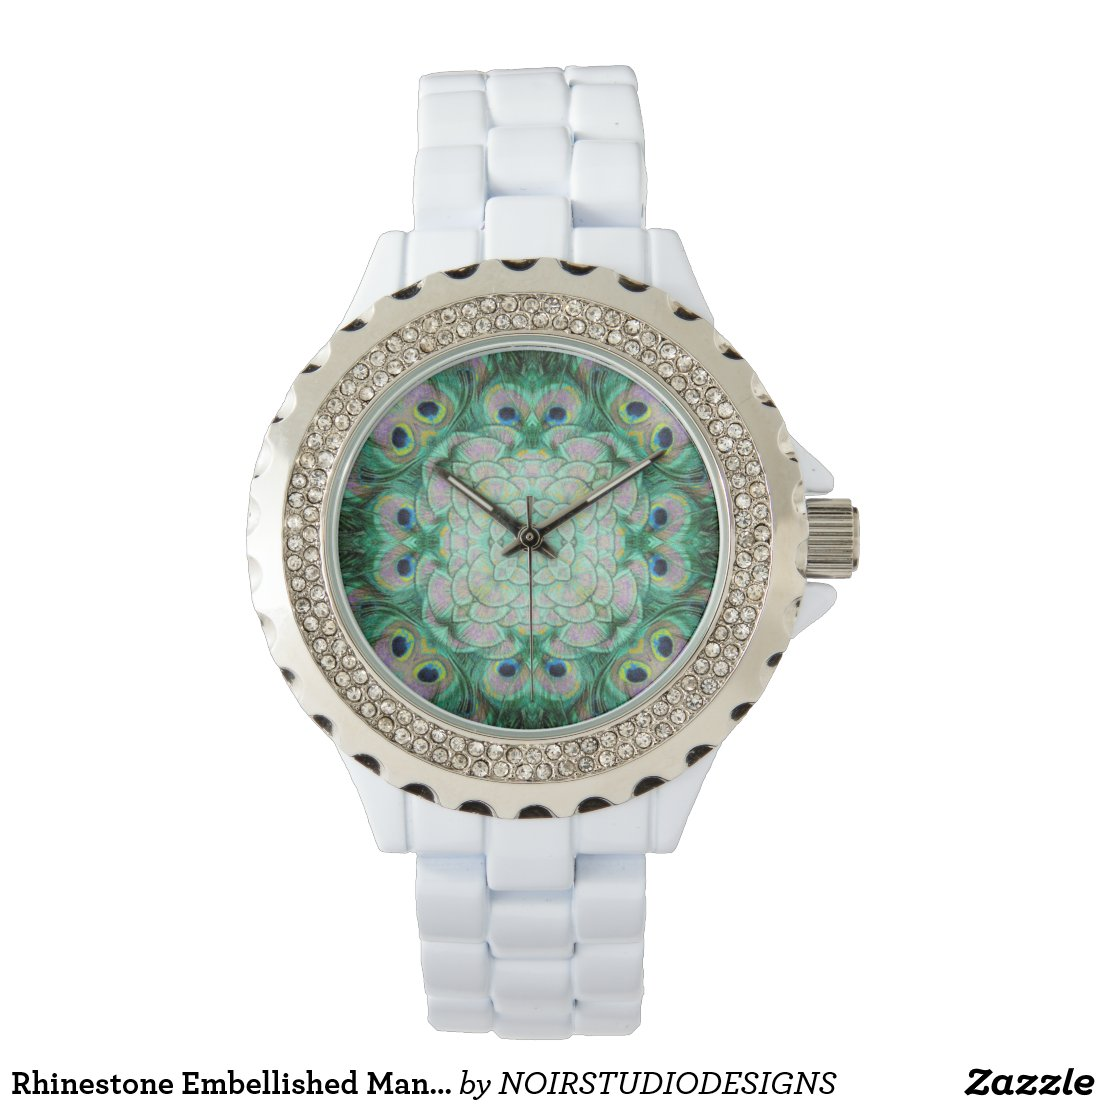 Rhinestone Embellished Mandala Watch